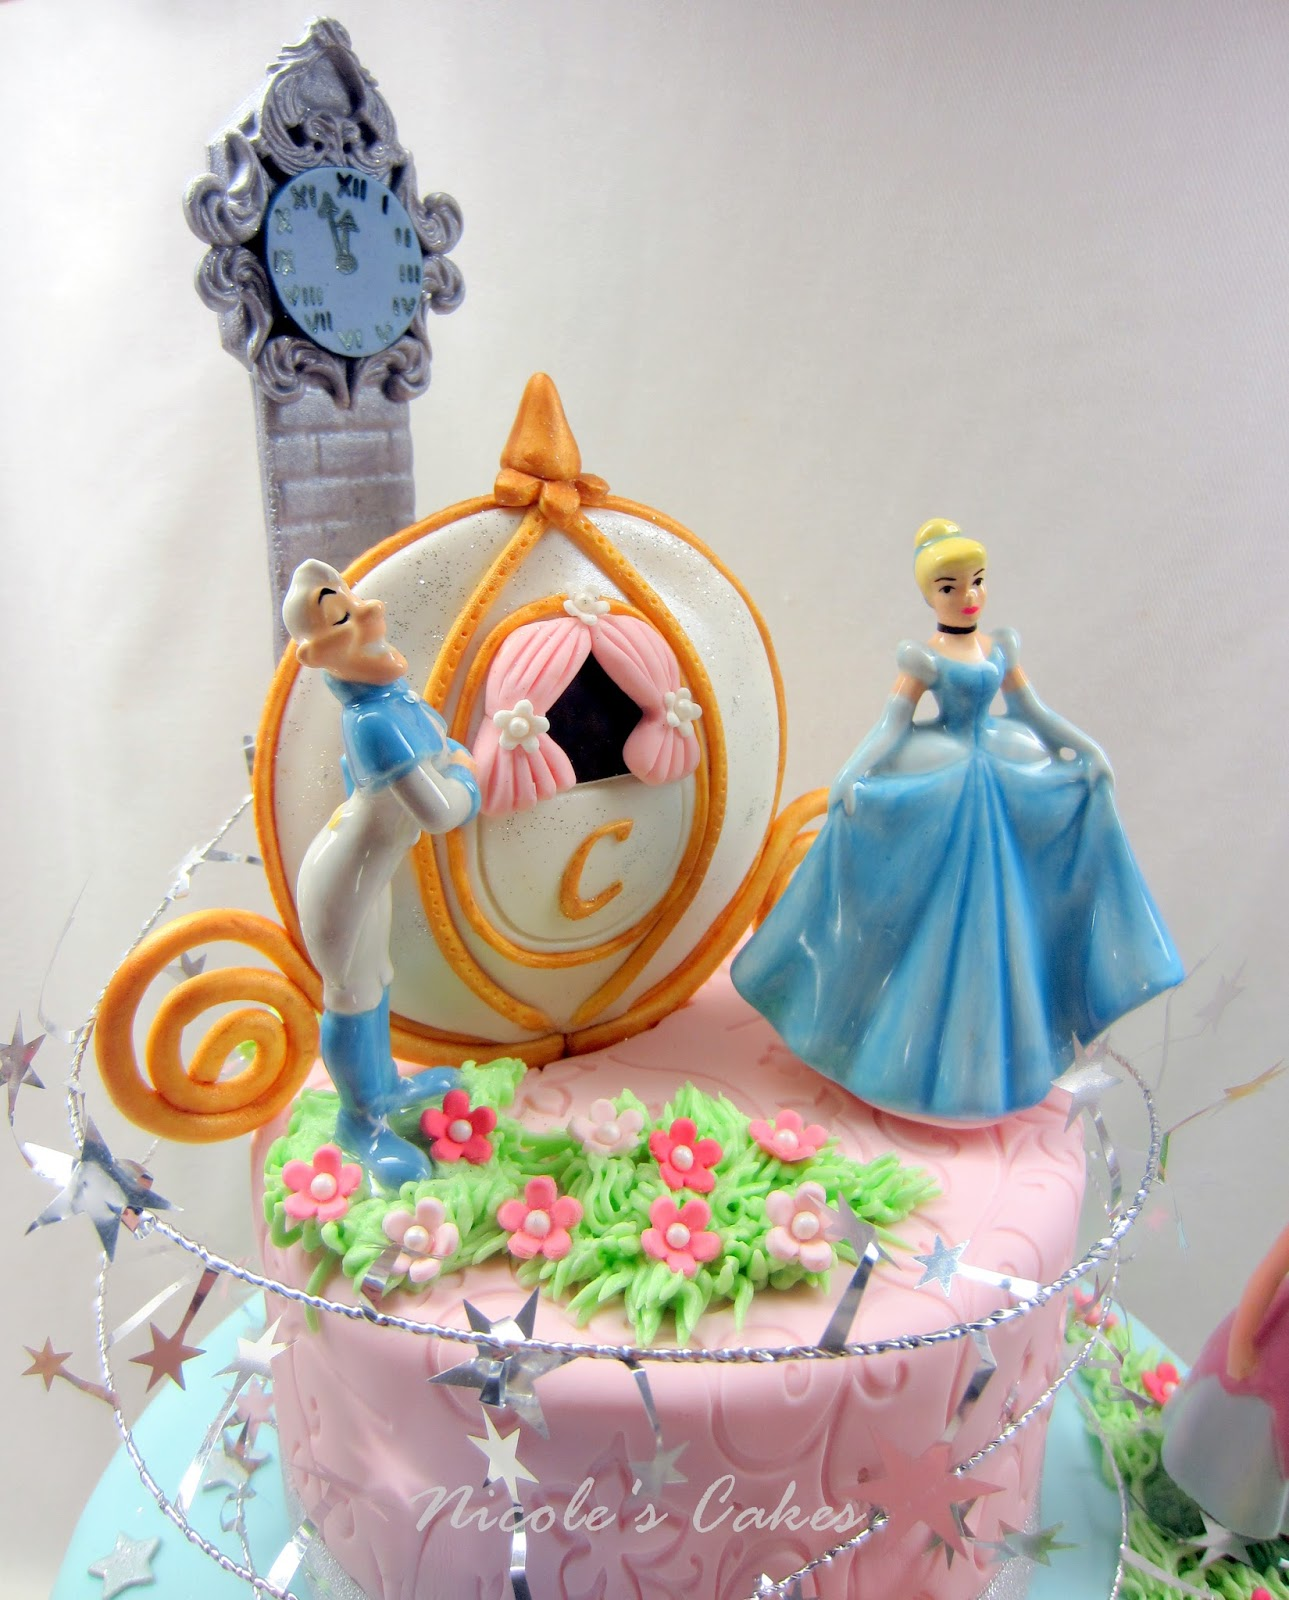 Confections, Cakes & Creations!: 'The Cinderella Story